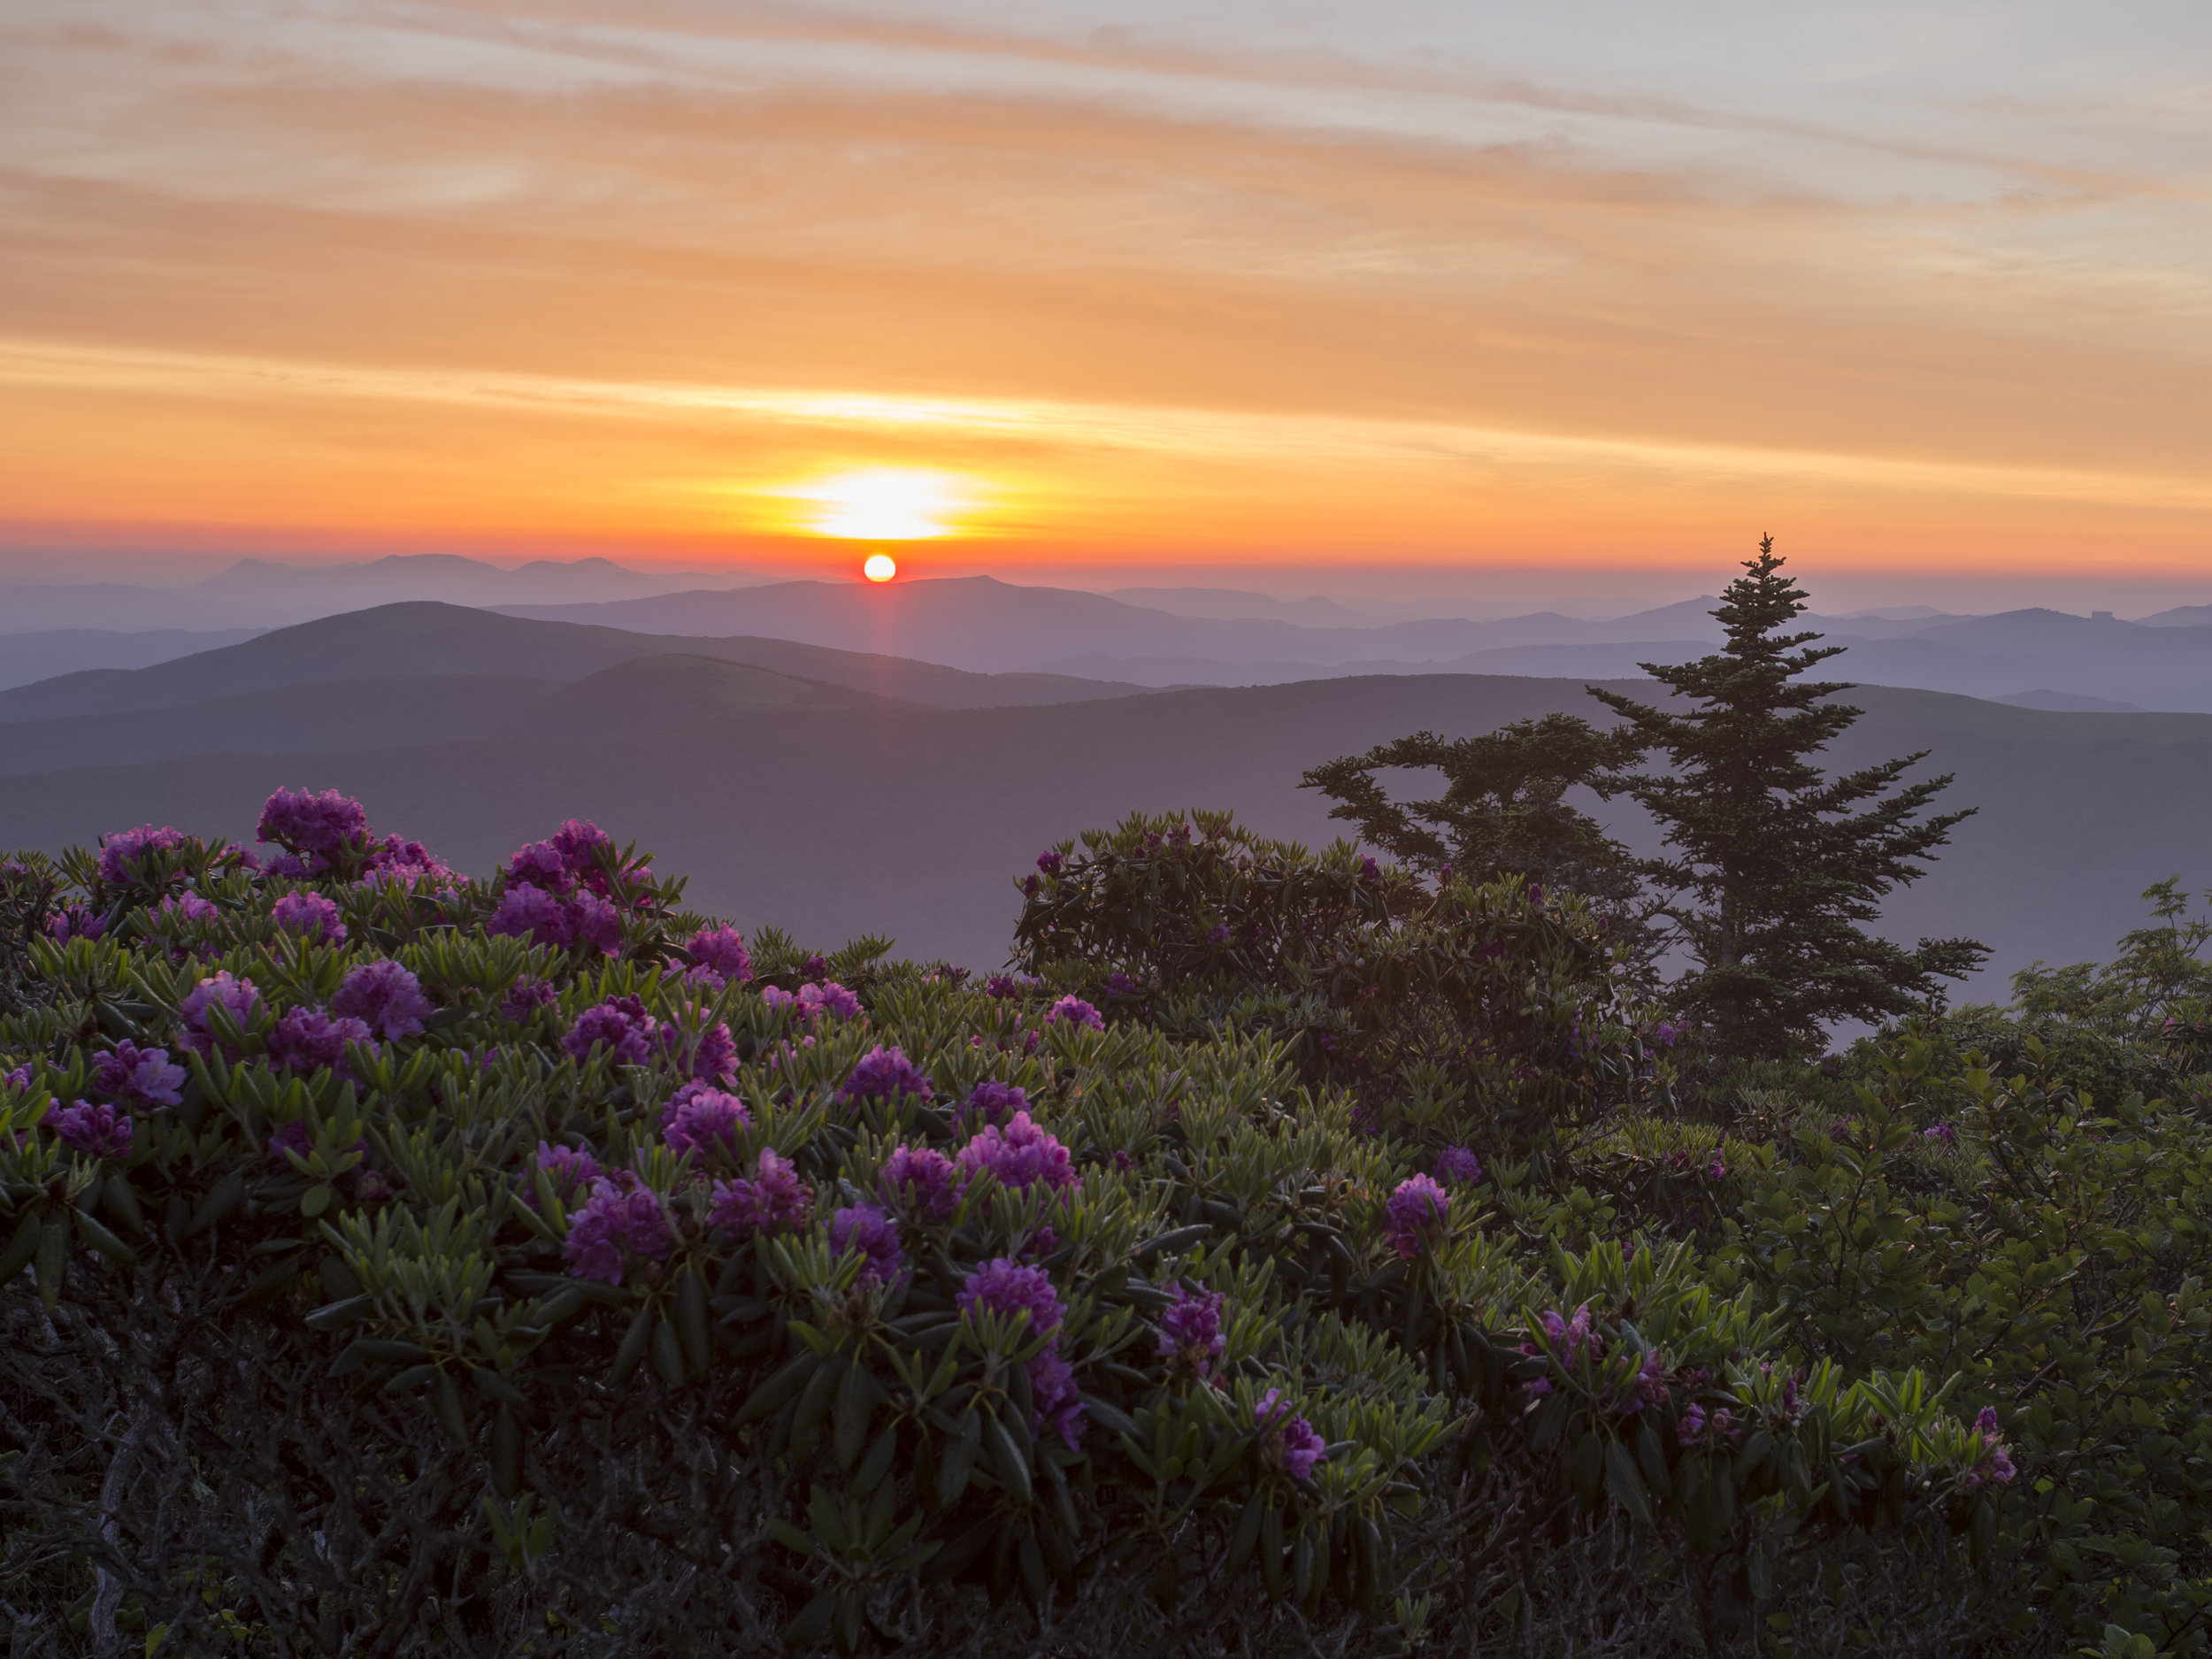 Rhododendron Sunrise, North Carolina